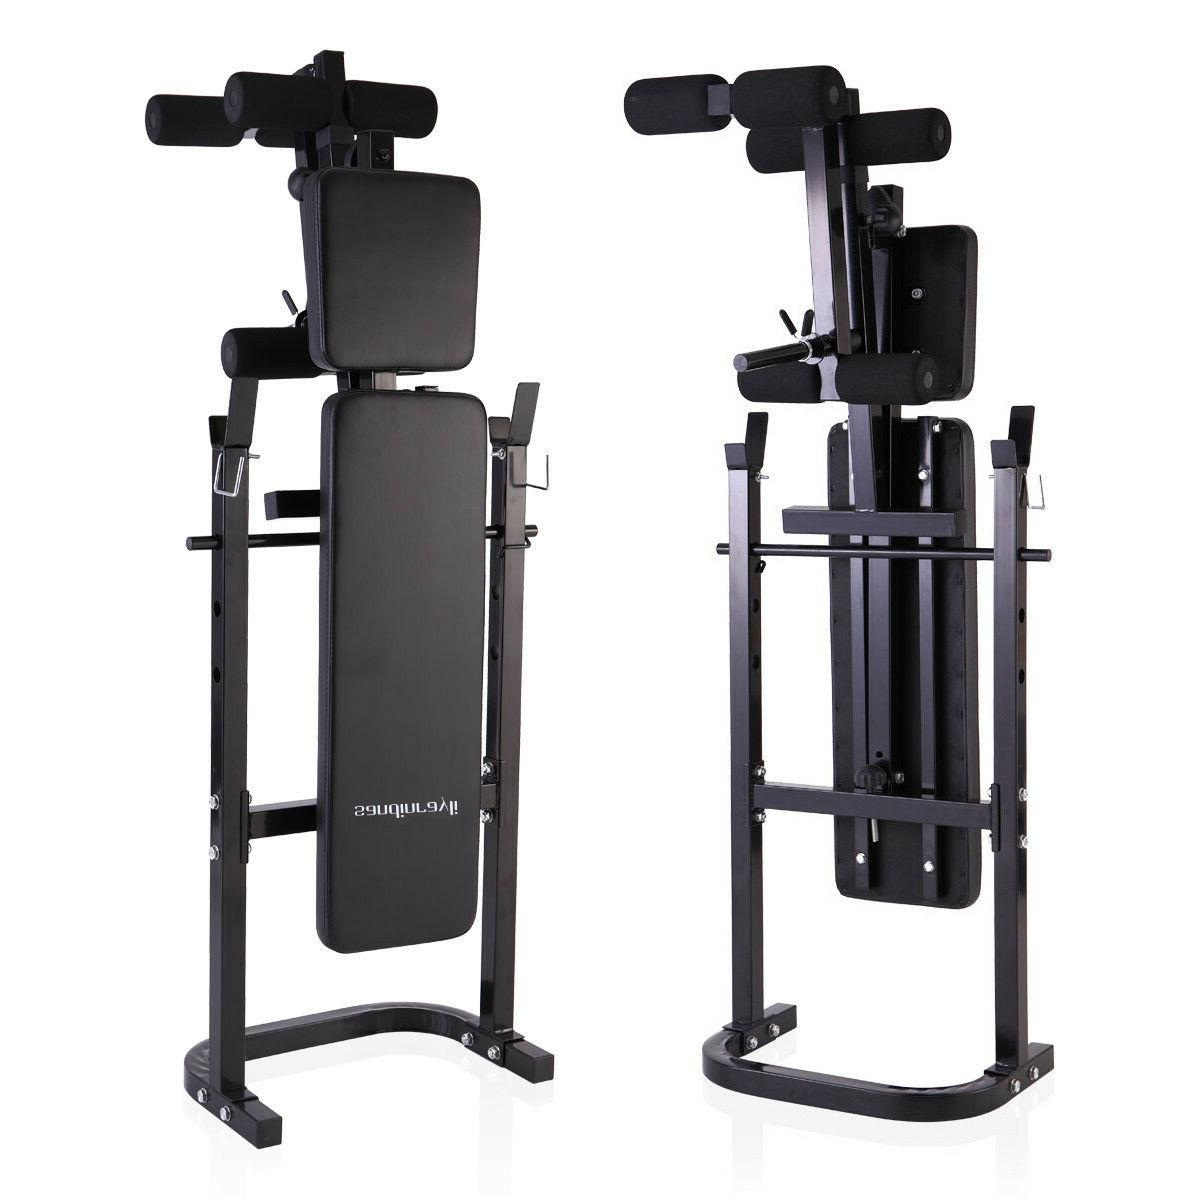 Weight Bench Press Adjustable Incline